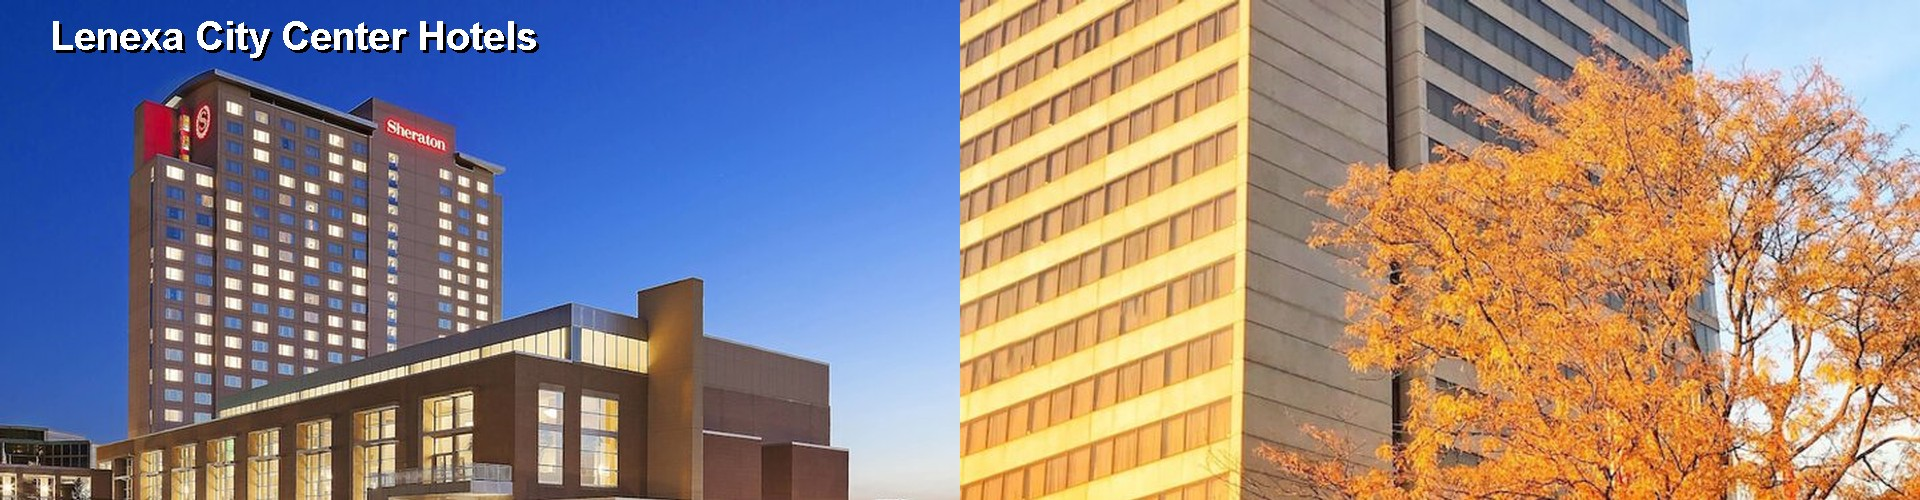 4 Best Hotels near Lenexa City Center